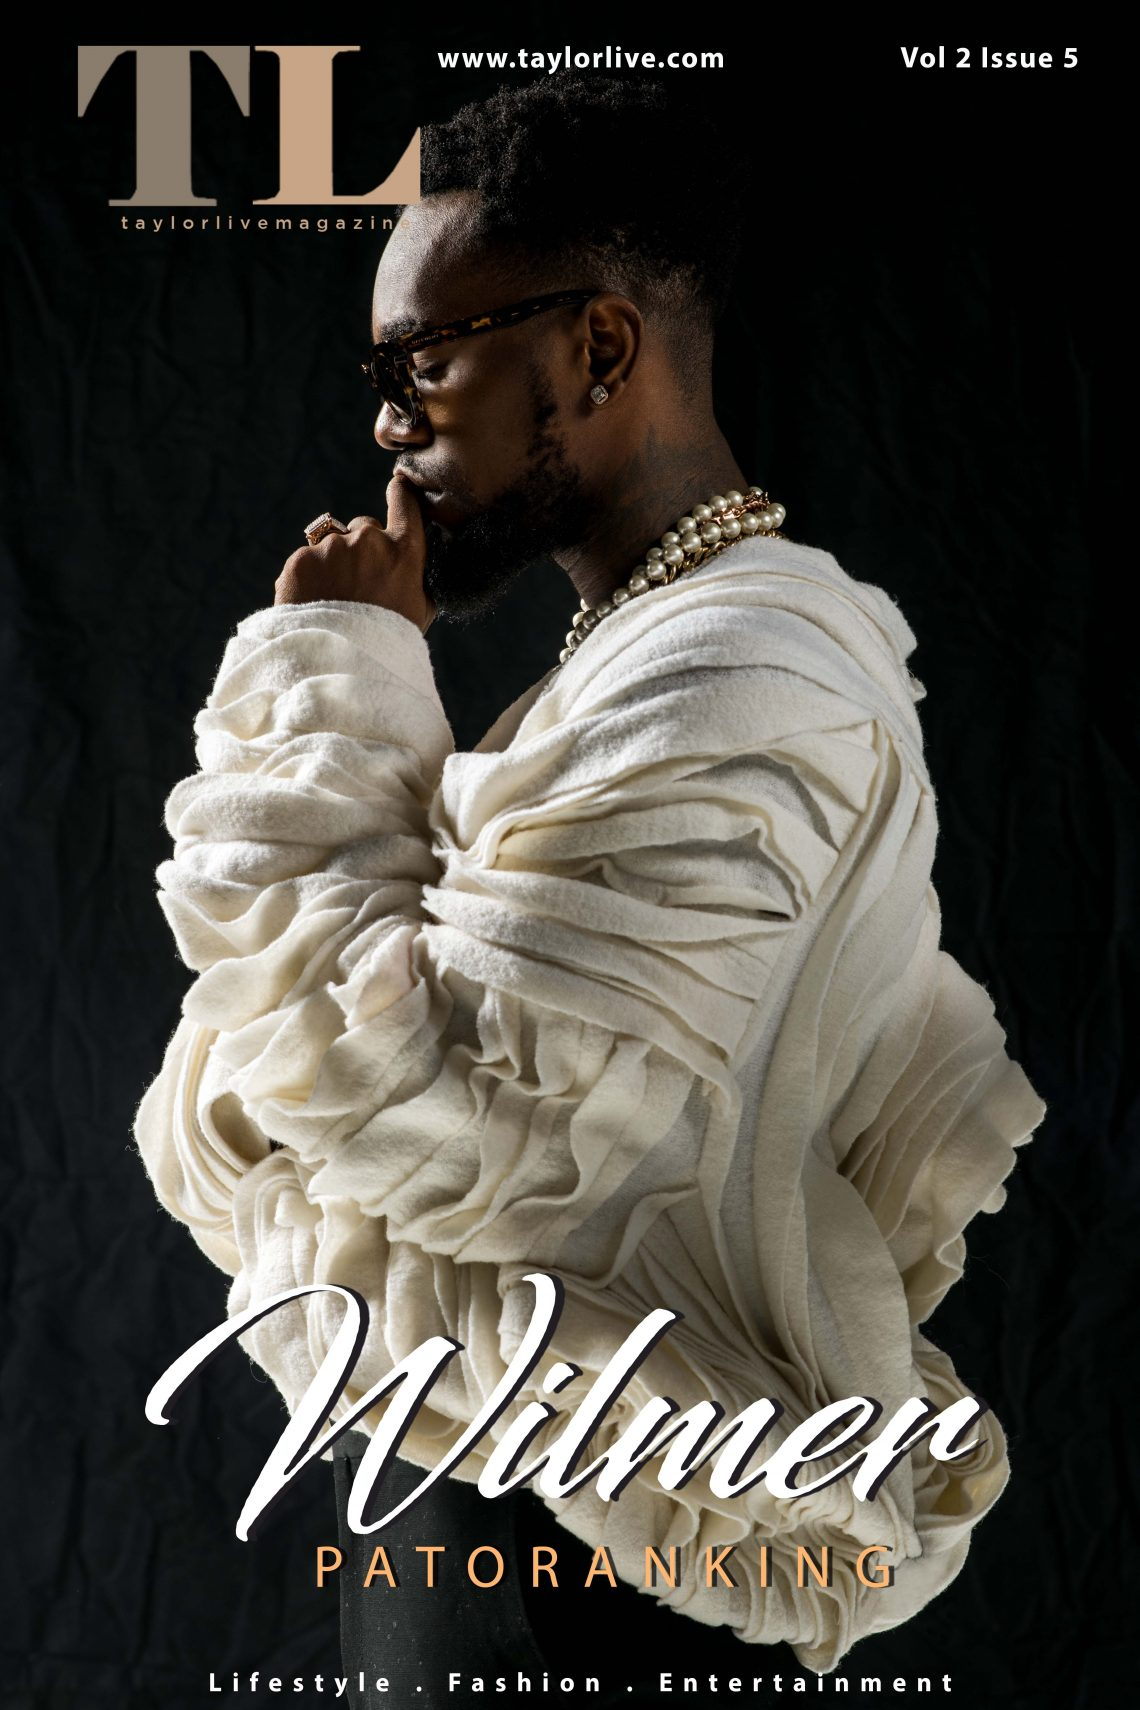 Wilmer – Patoranking Covers Taylor Live Magazine's Latest Issue